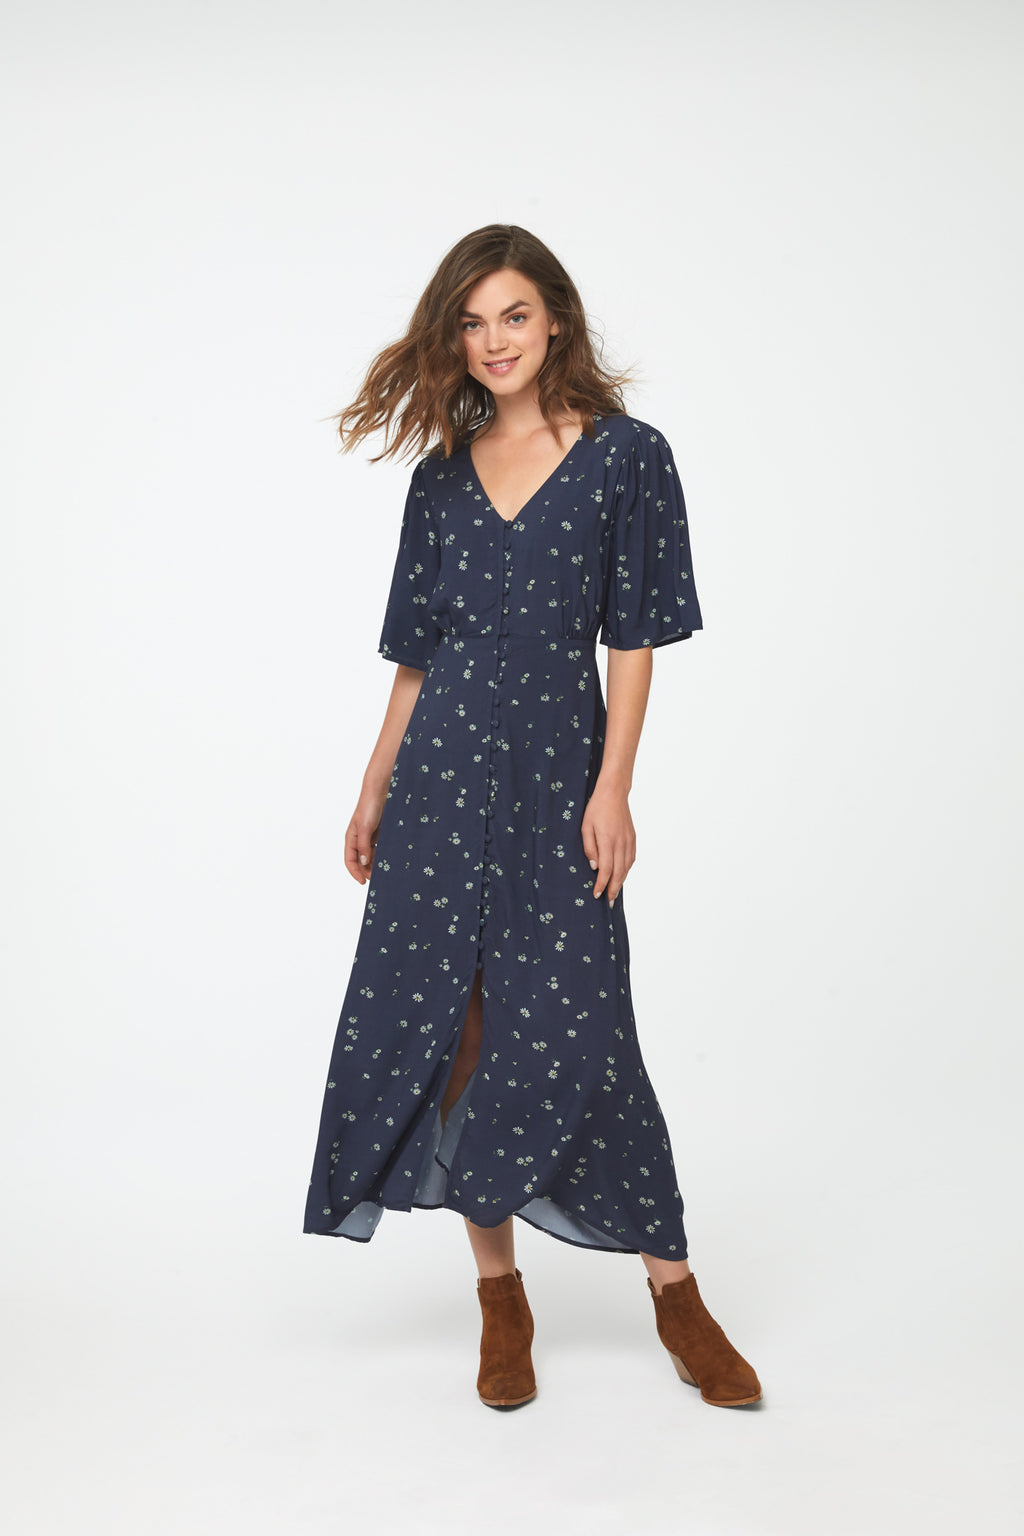 woman wearing navy-blue floral, A-line midi dress with front button v-neck and short flutter sleeves